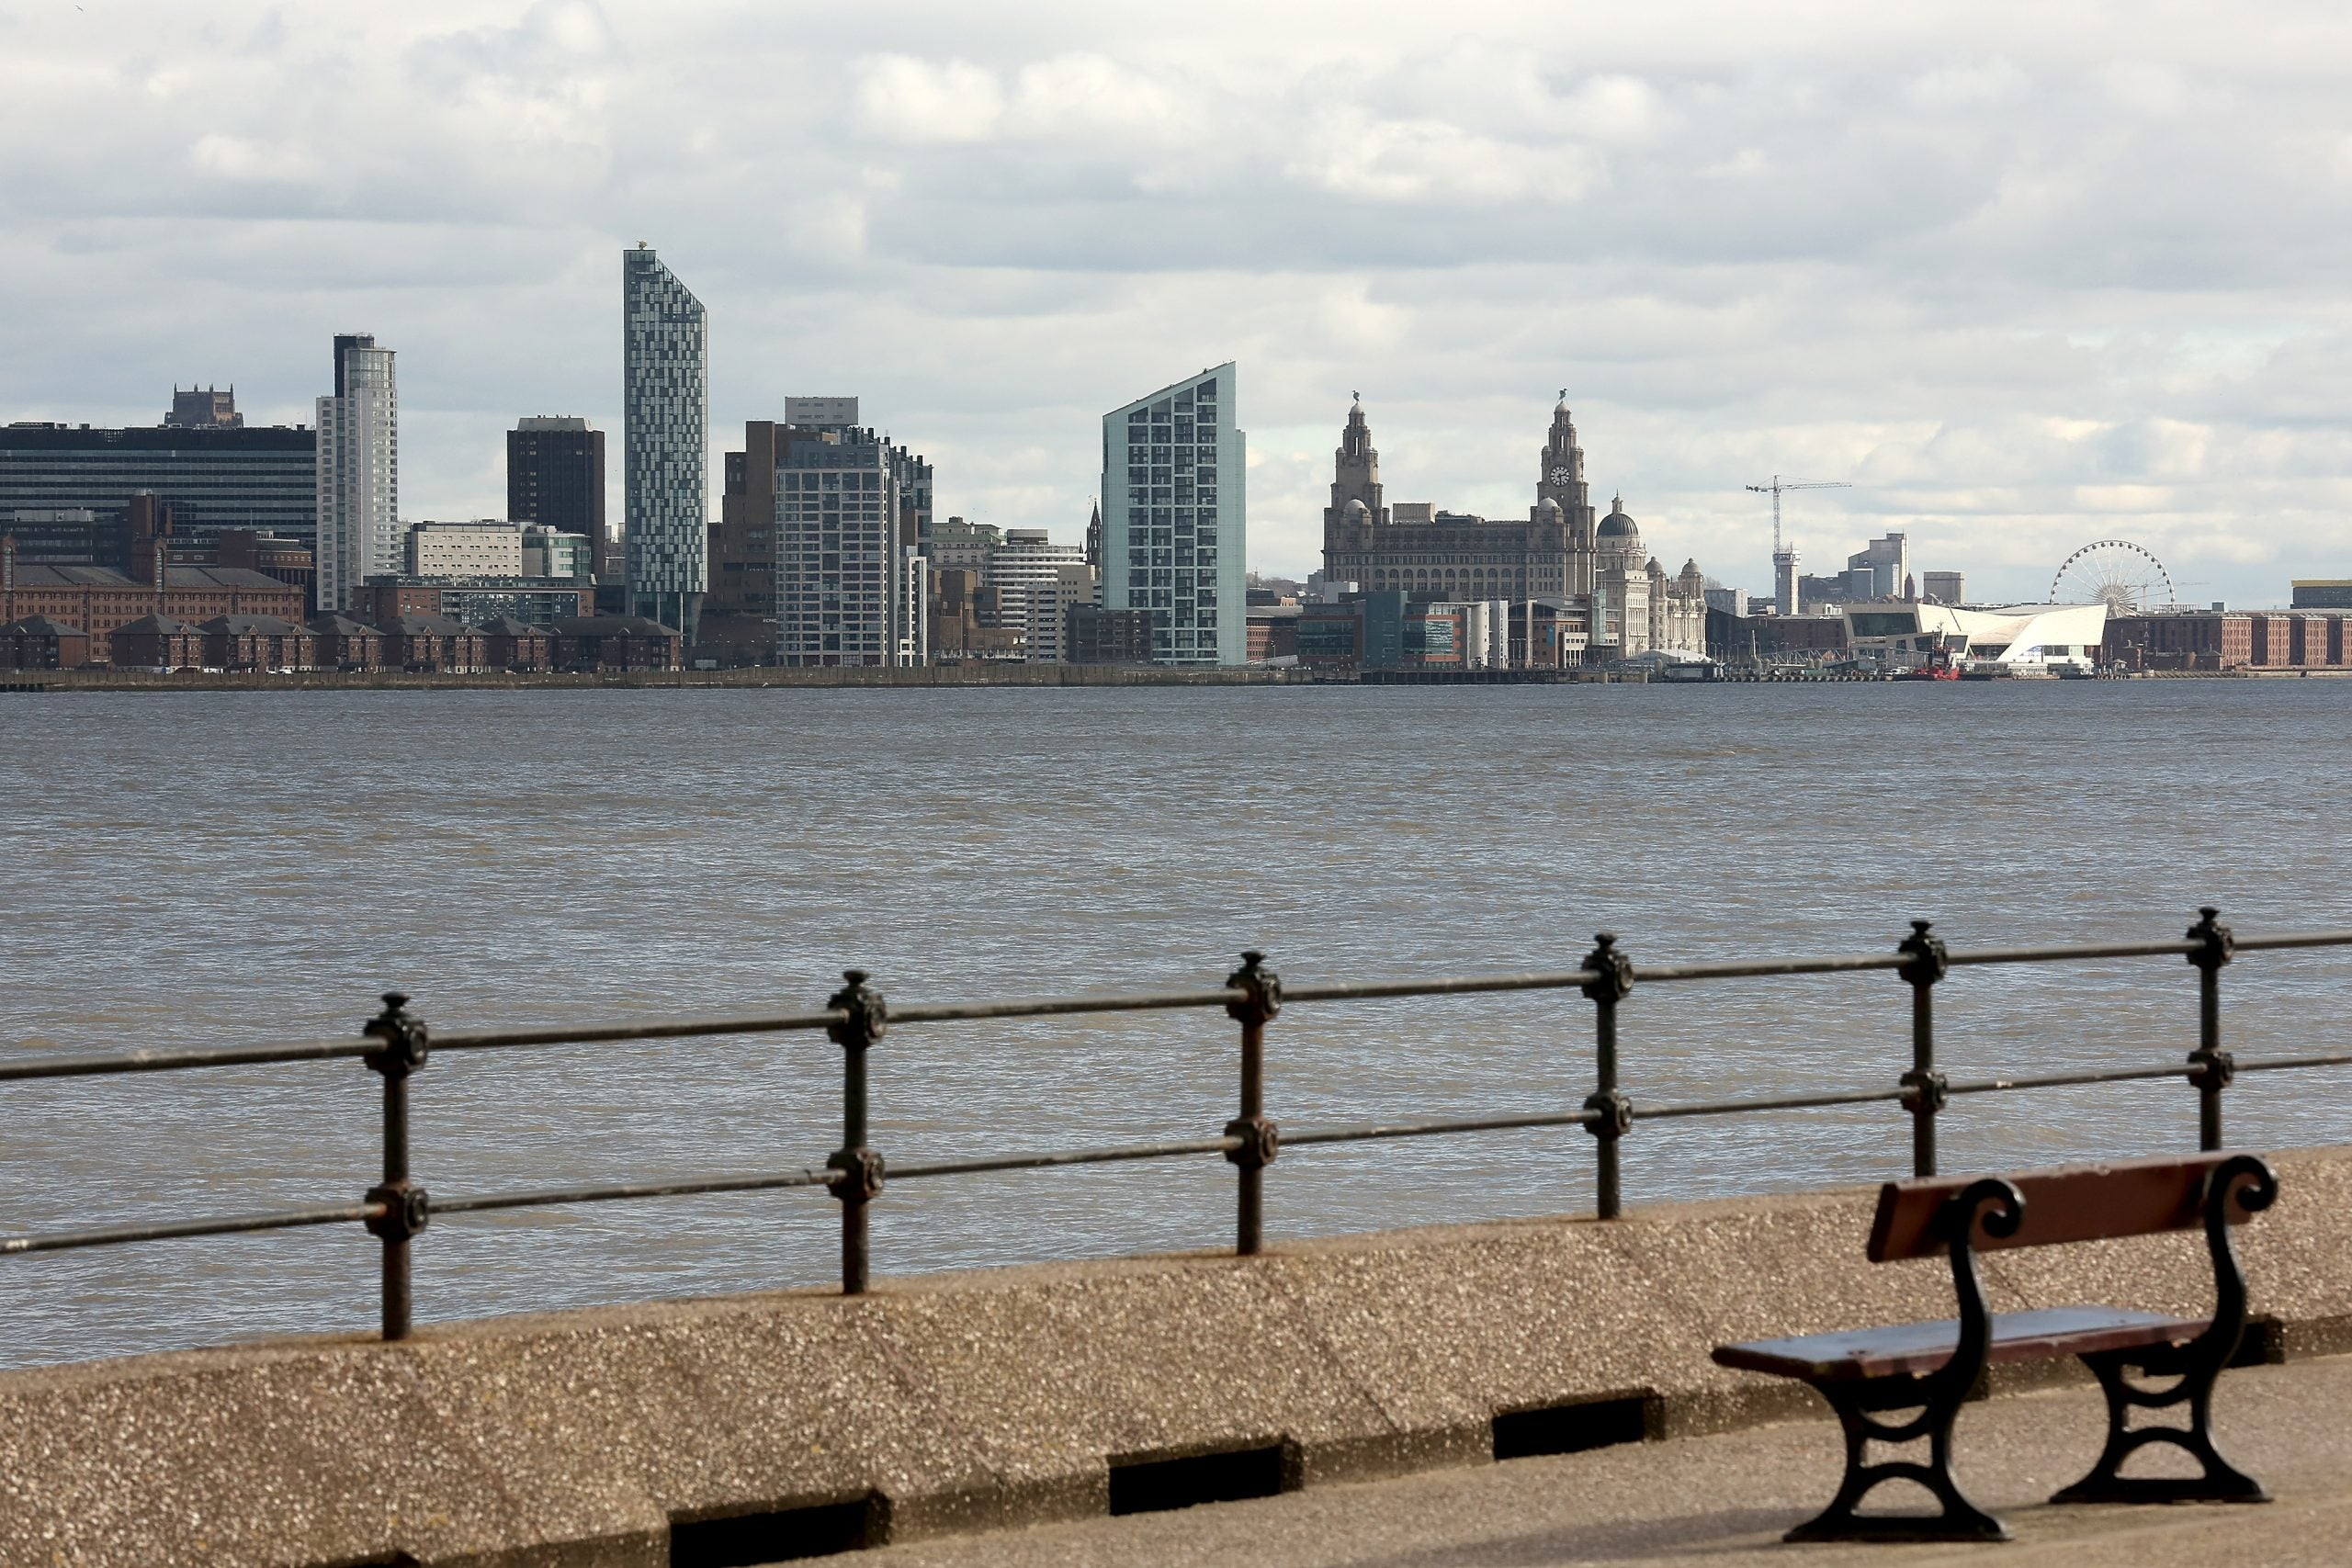 Momentum banning the Sun? It's the only polite thing to do in Liverpool